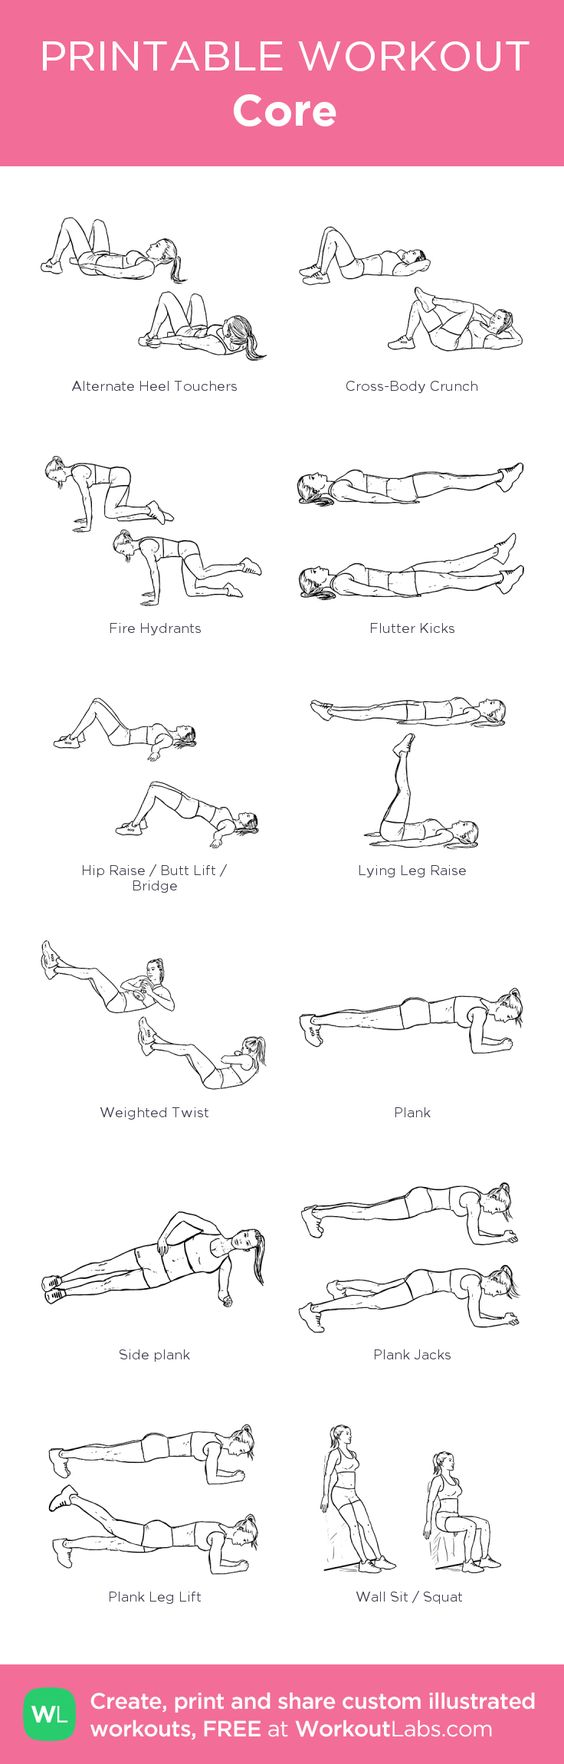 Core: my custom printable workout by @WorkoutLabs #workoutlabs #customworkout